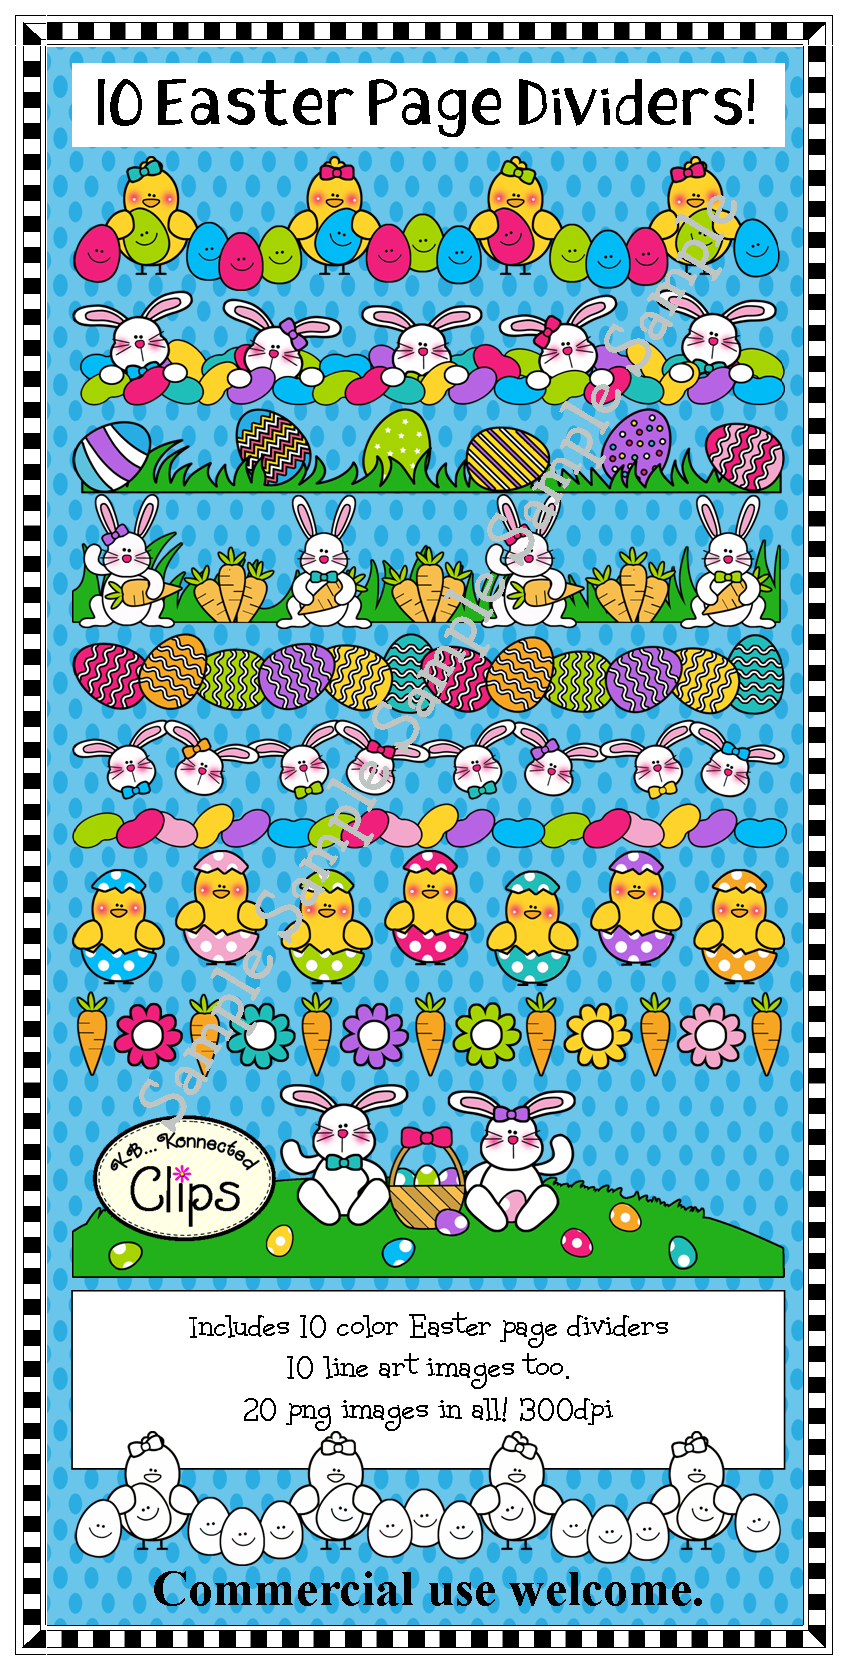 10 Easter Page Dividers - color and line art | Easter, Bulletin ...